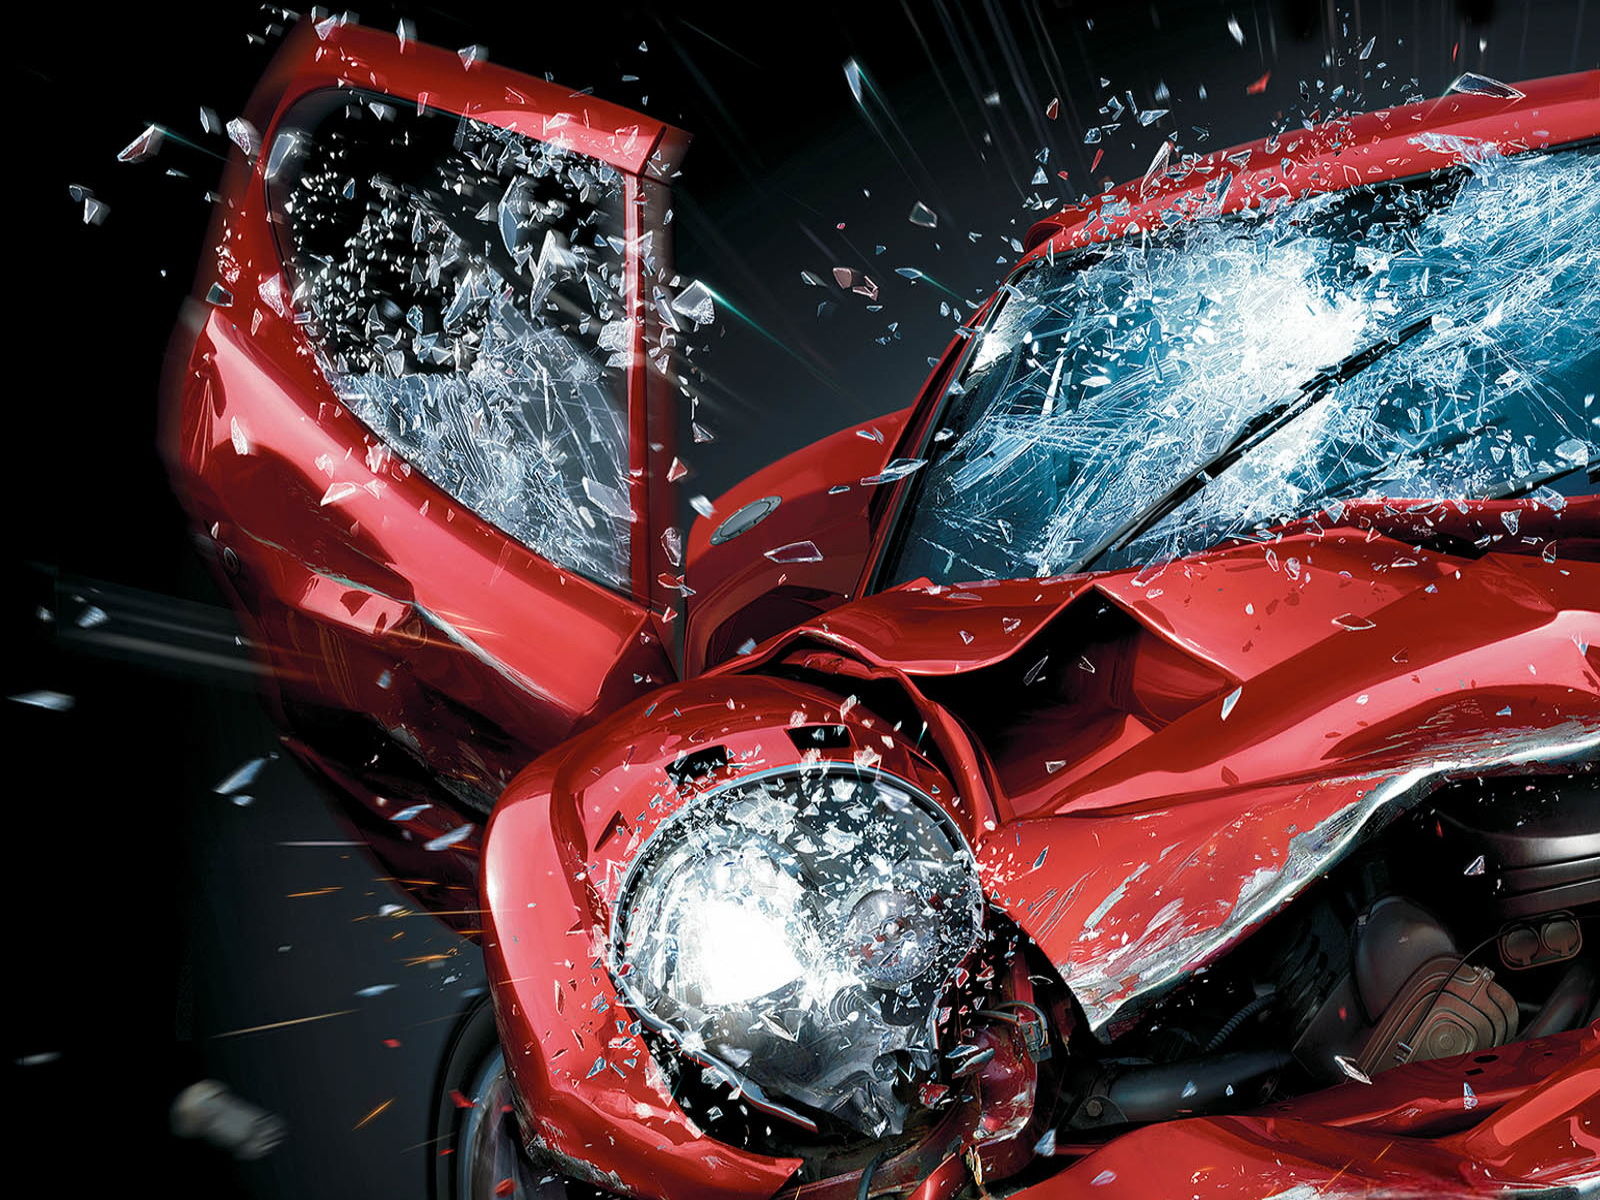 http://1.bp.blogspot.com/-Hn1G5rEI-g8/T0BETldKoNI/AAAAAAAAASI/eY4wh40Ff8U/s1600/accidente-de-coches-en-3d-wallpapers_25856_1600x1200.jpg